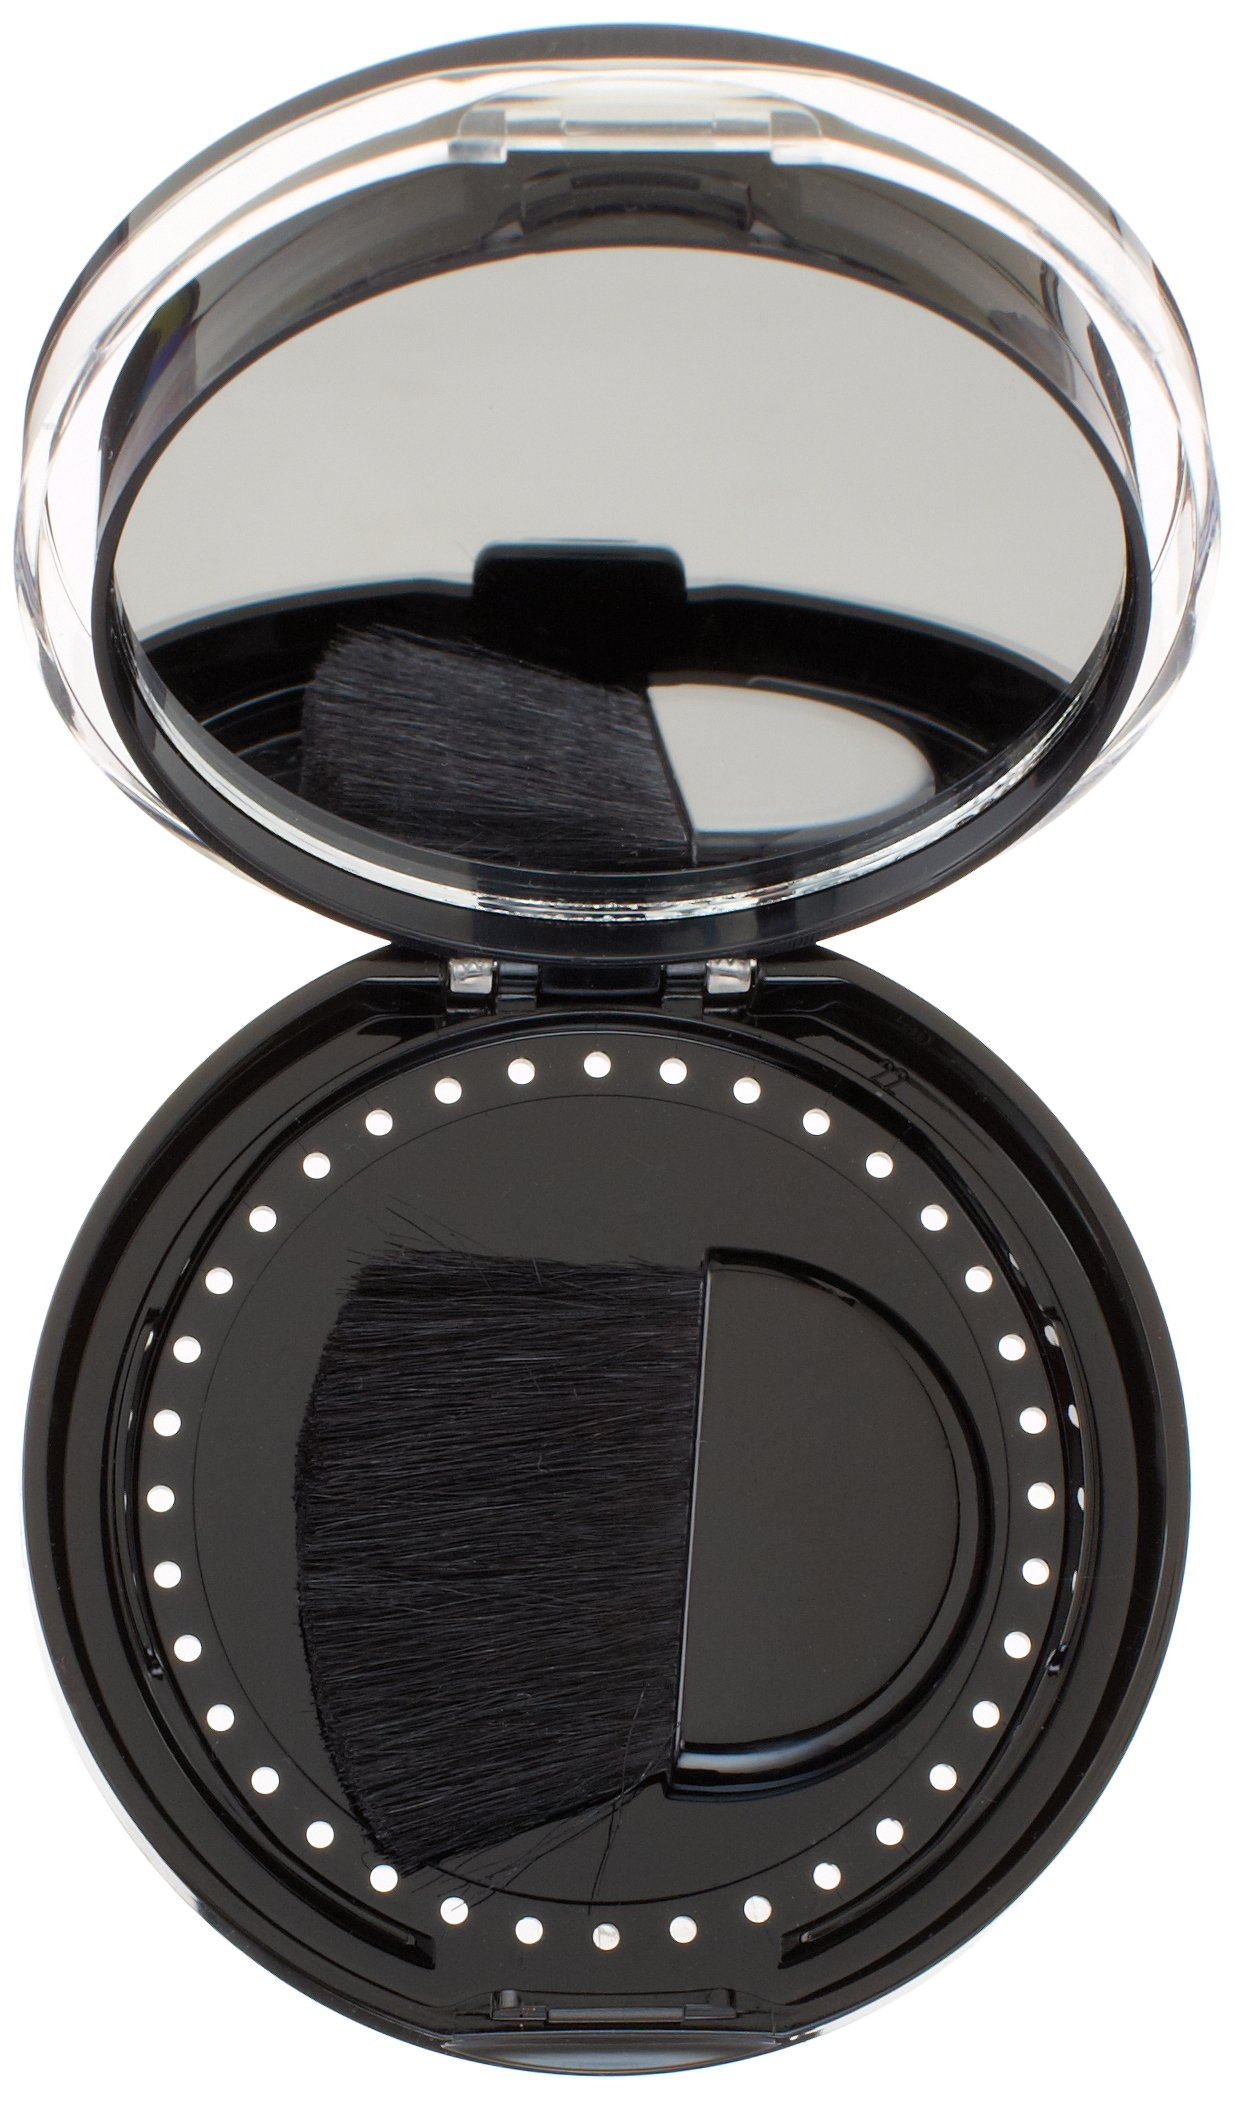 Maybelline New York Face Studio Master Hi-Light Blush, Nude, 0.31 Ounce by Maybelline New York (Image #3)